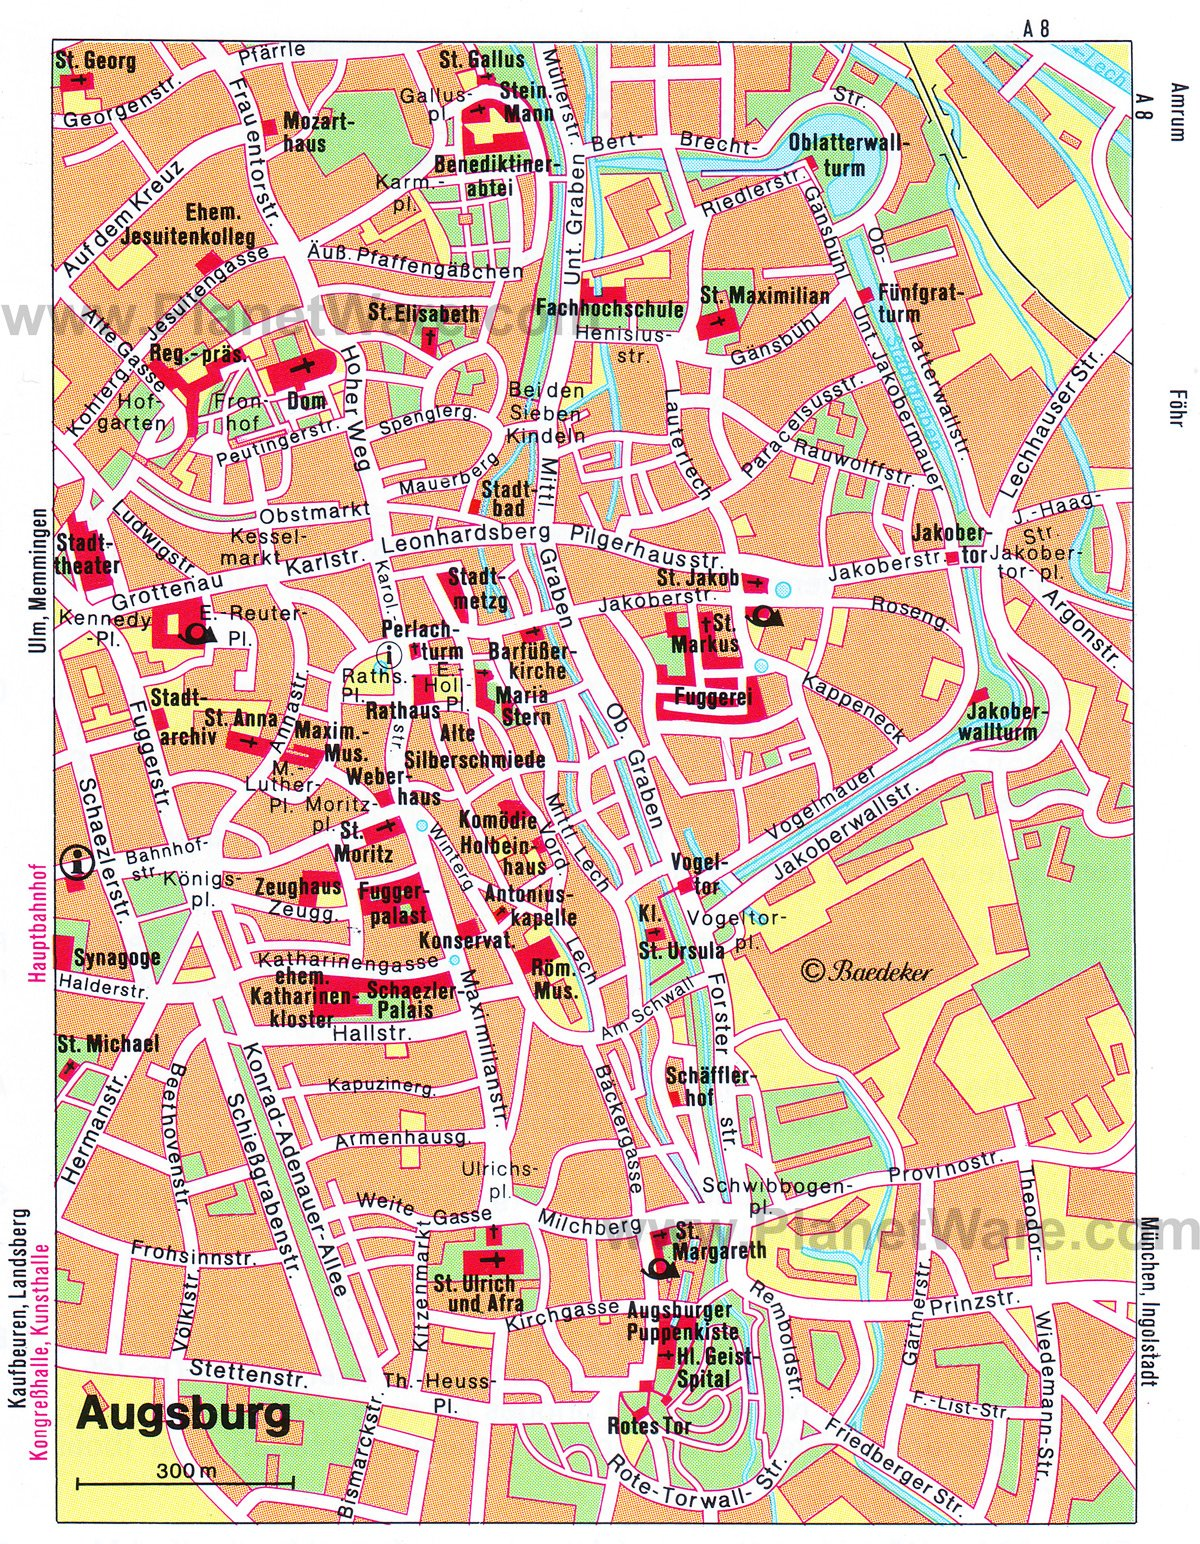 10 TopRated Tourist Attractions in Augsburg – Berlin City Map Tourist